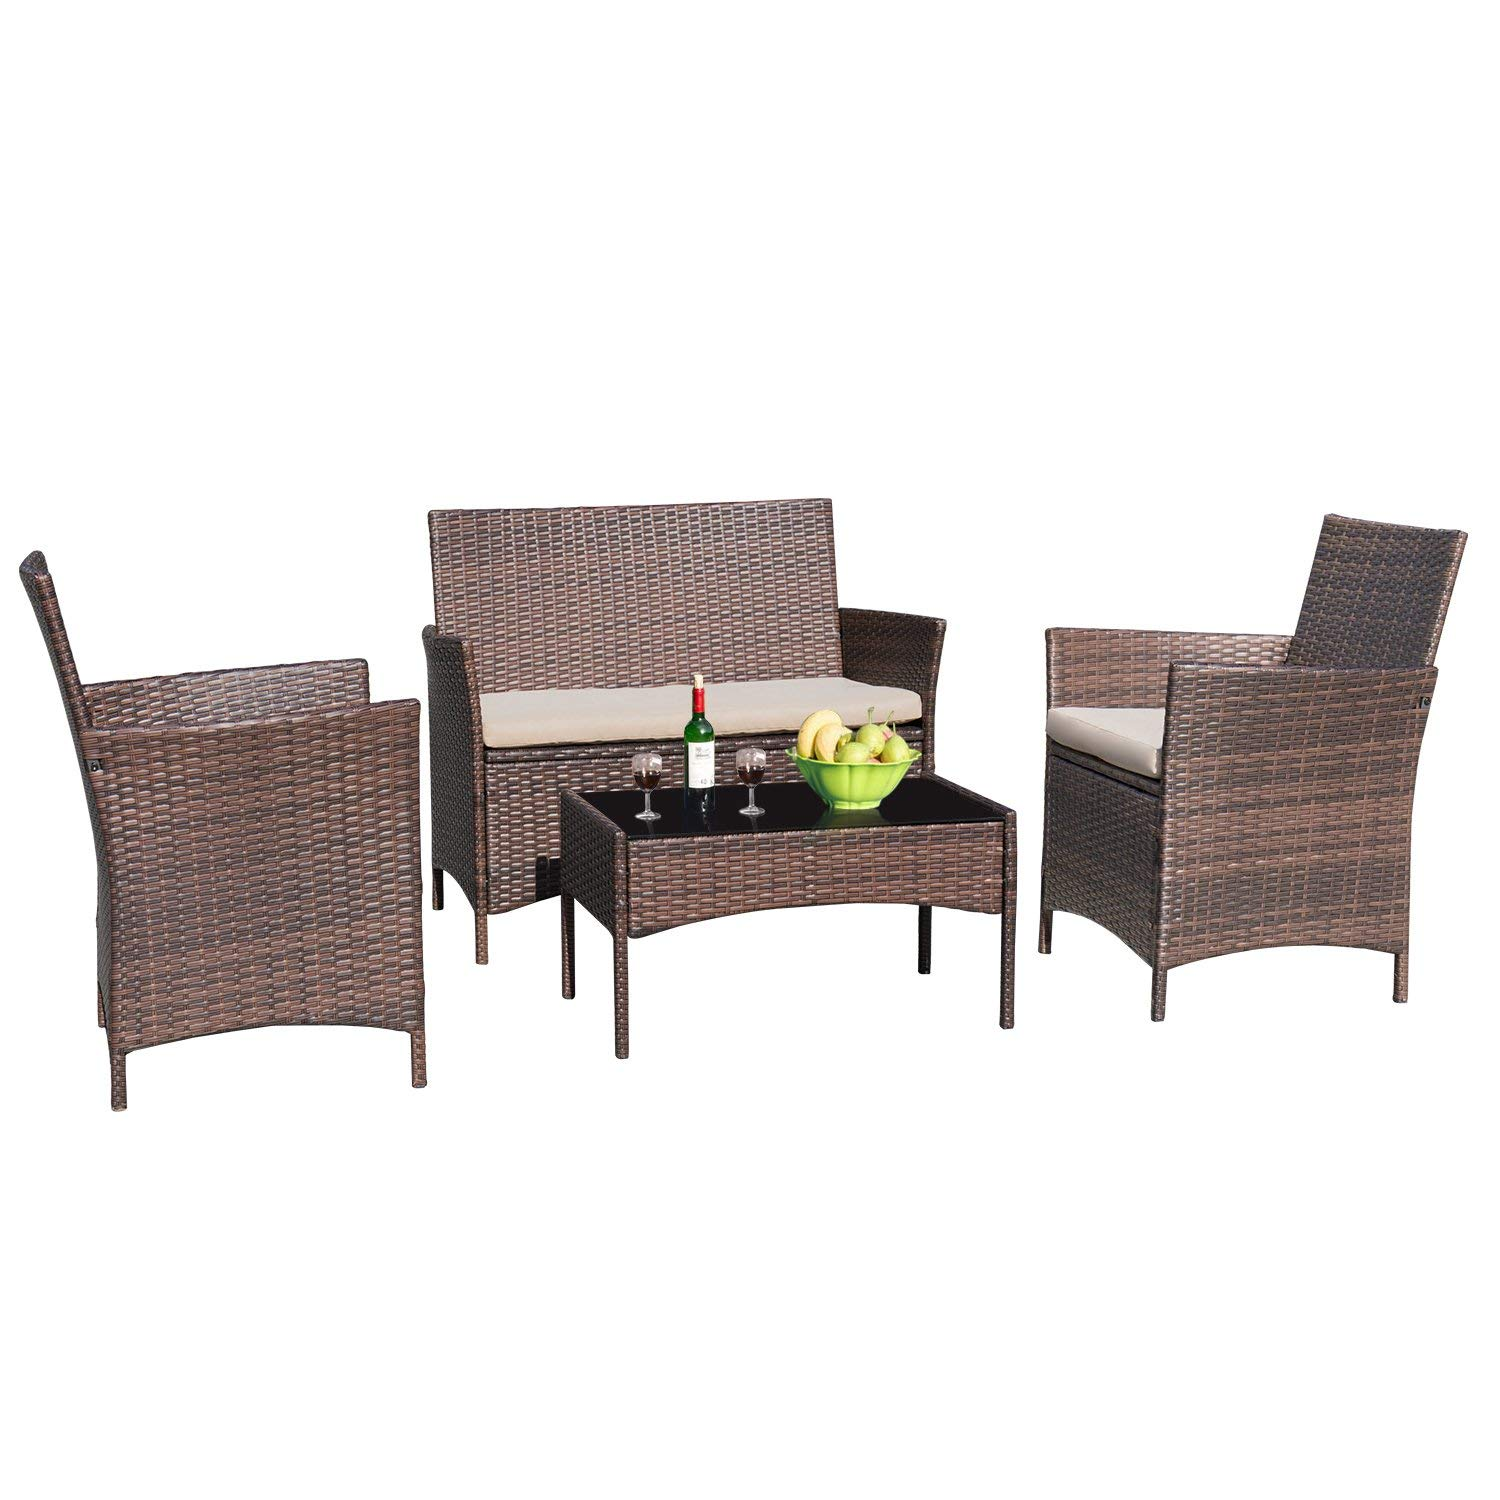 Devoko 4 Pieces Patio Porch Furniture Sets PE Rattan Wicker Chairs Beige Cushion with Table Outdoor Garden Patio Furniture Sets Brown